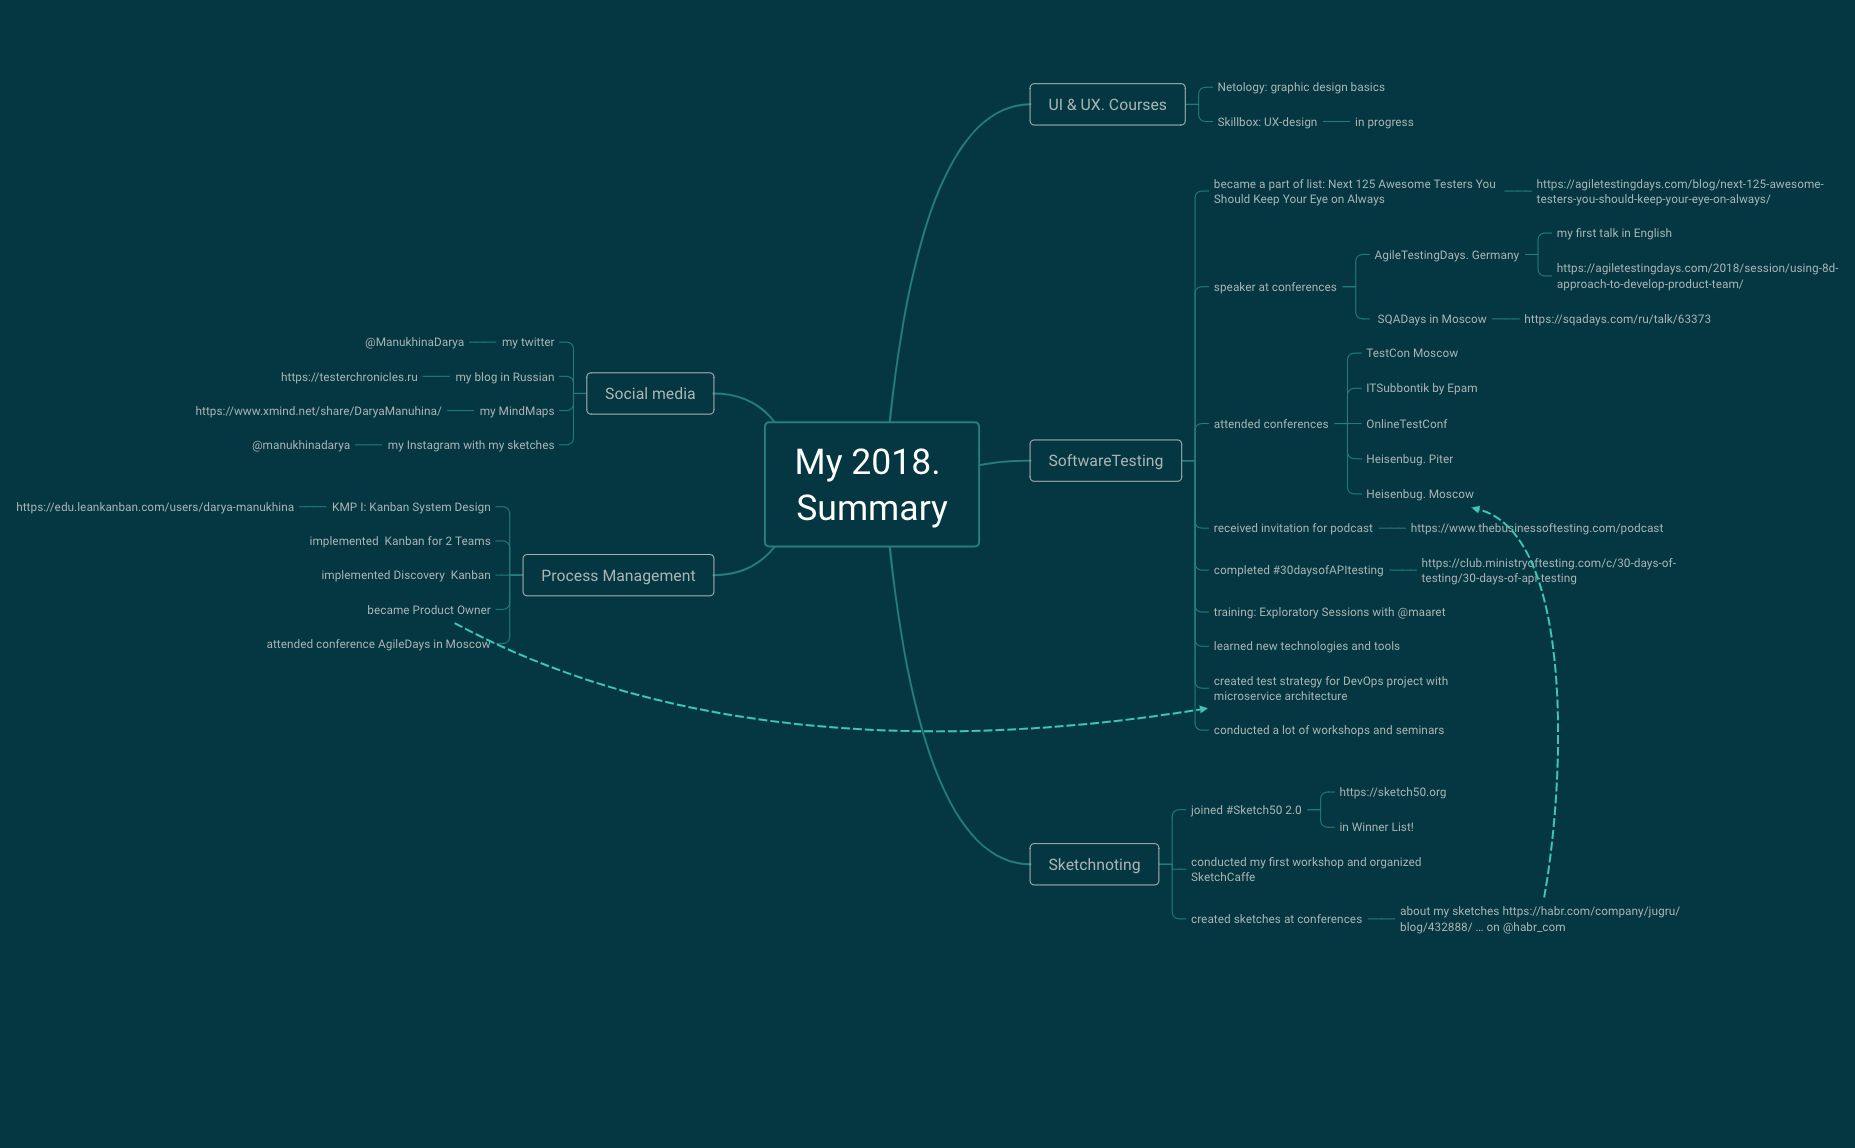 My 2018. Summary: software testing, sketching, process management